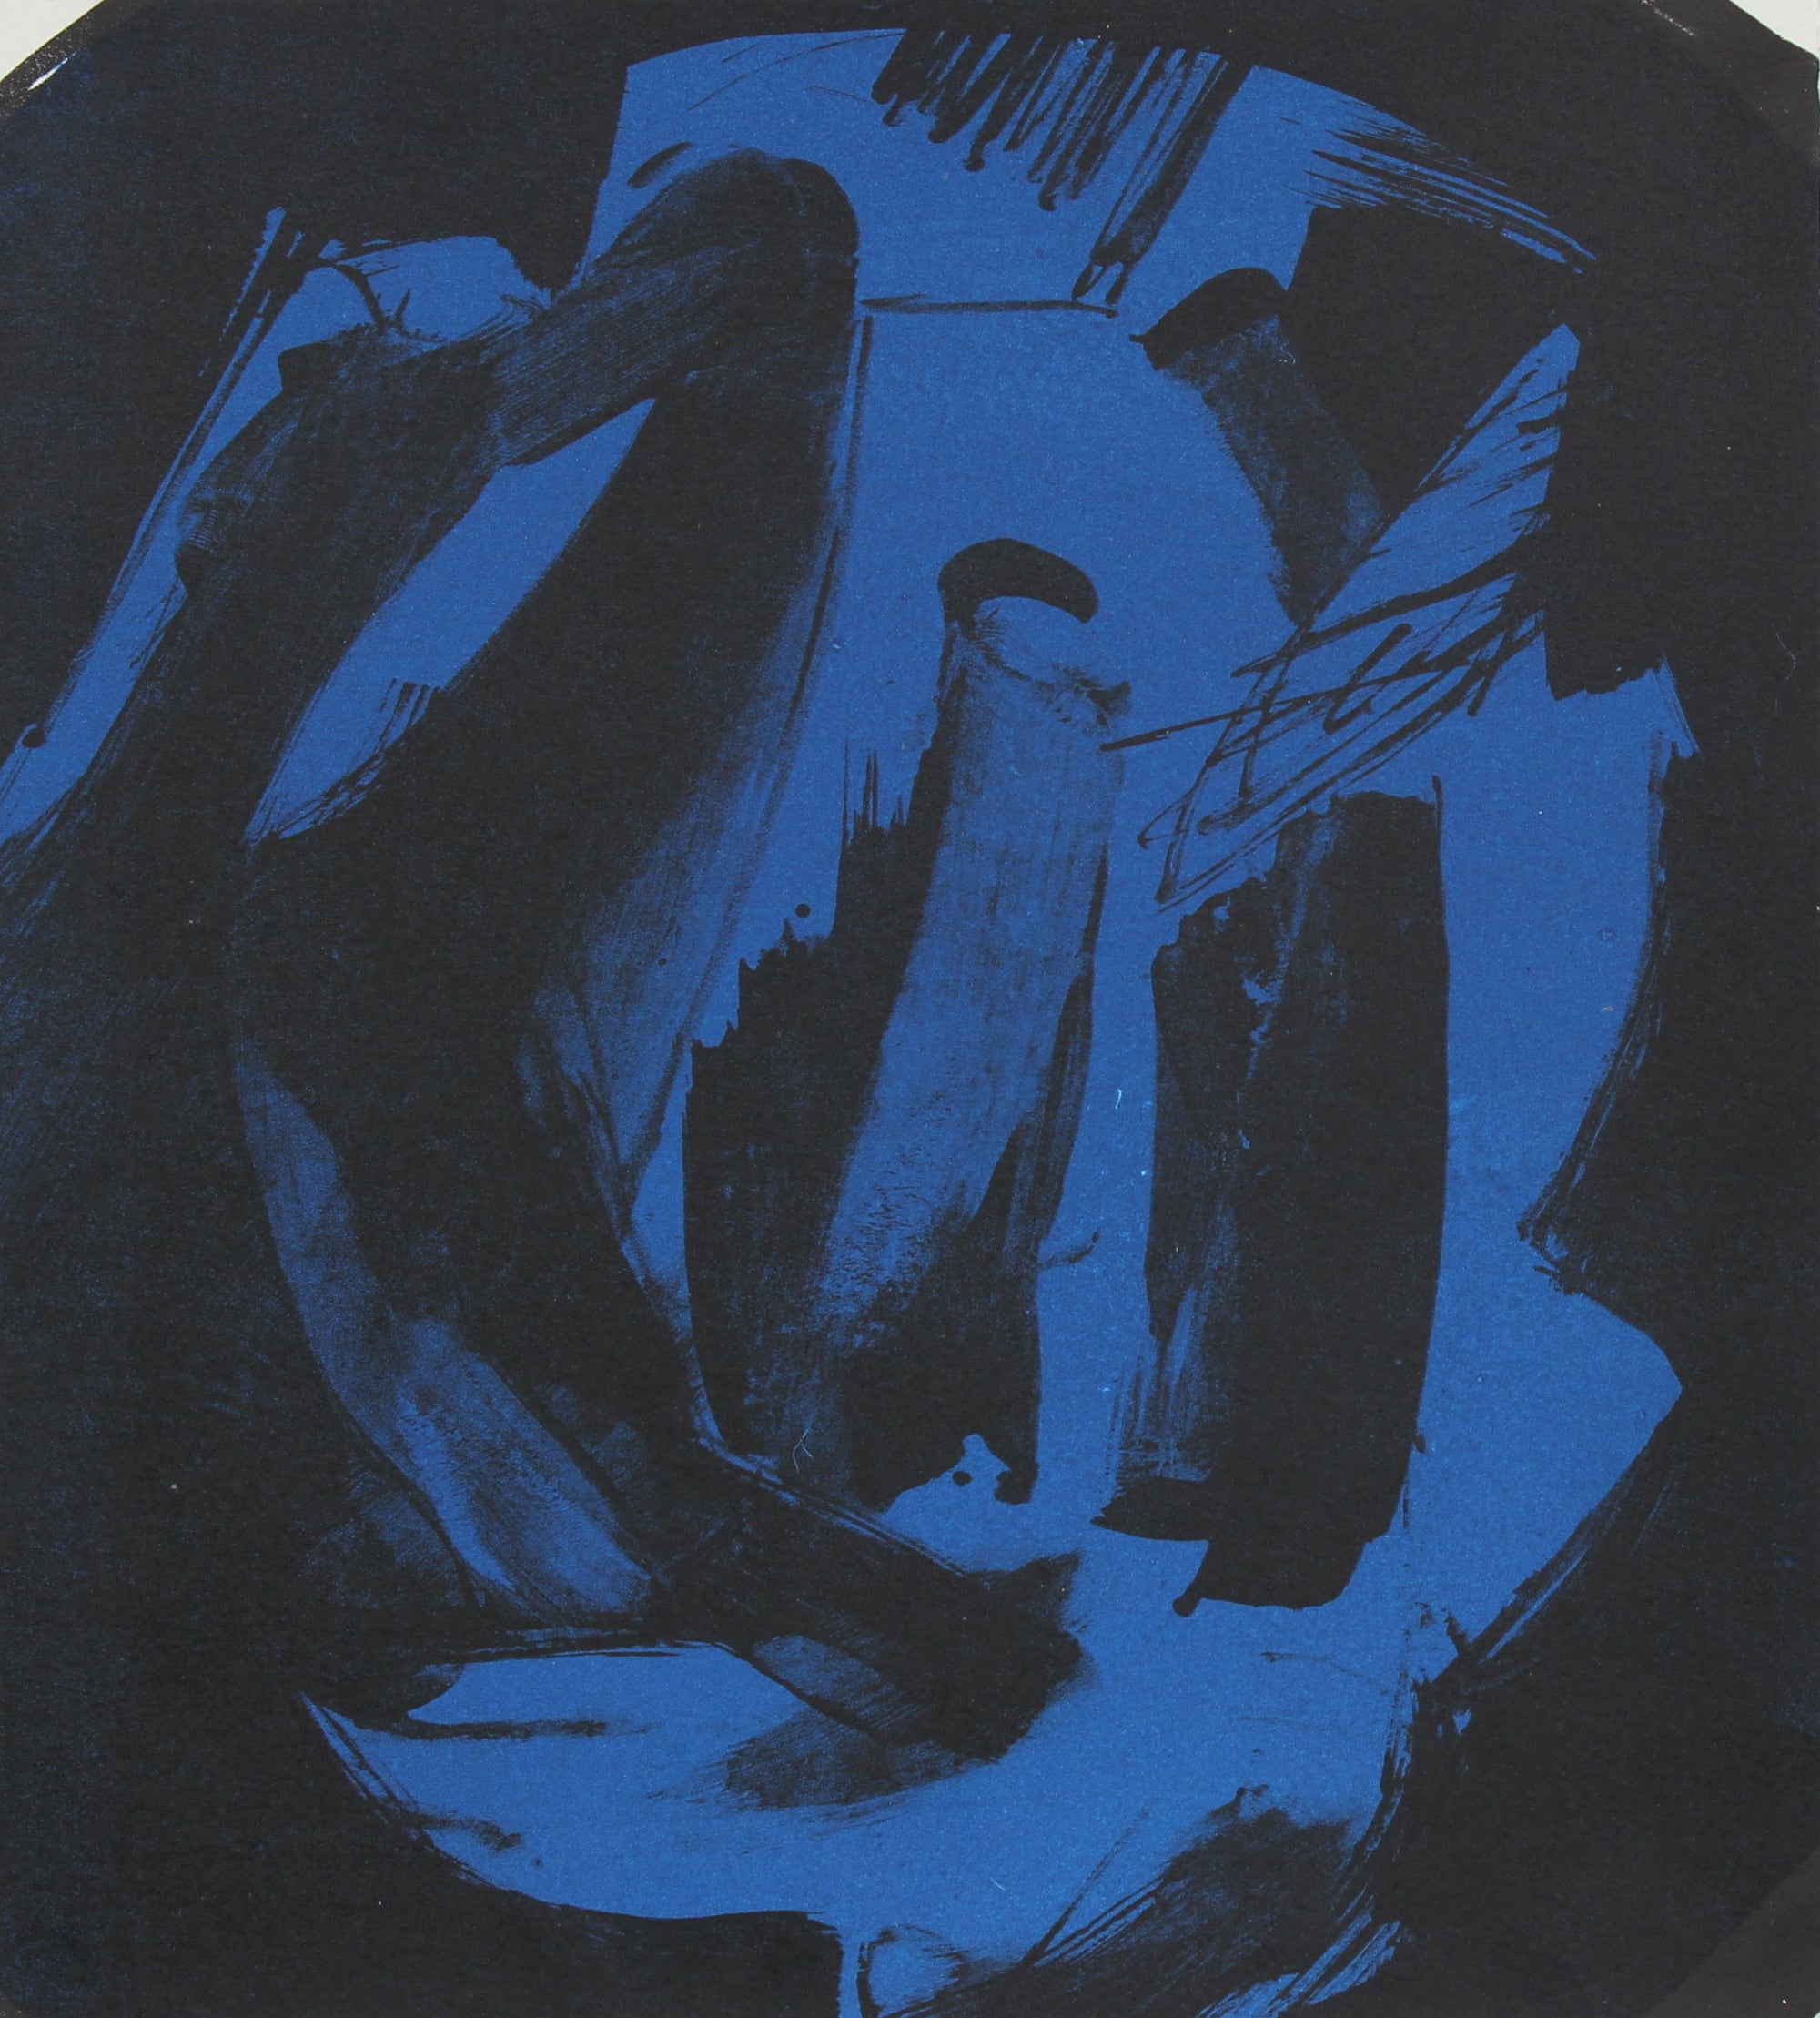 Abstract Print in Blue and Black<br>1997 Lithograph <br><br>#96831